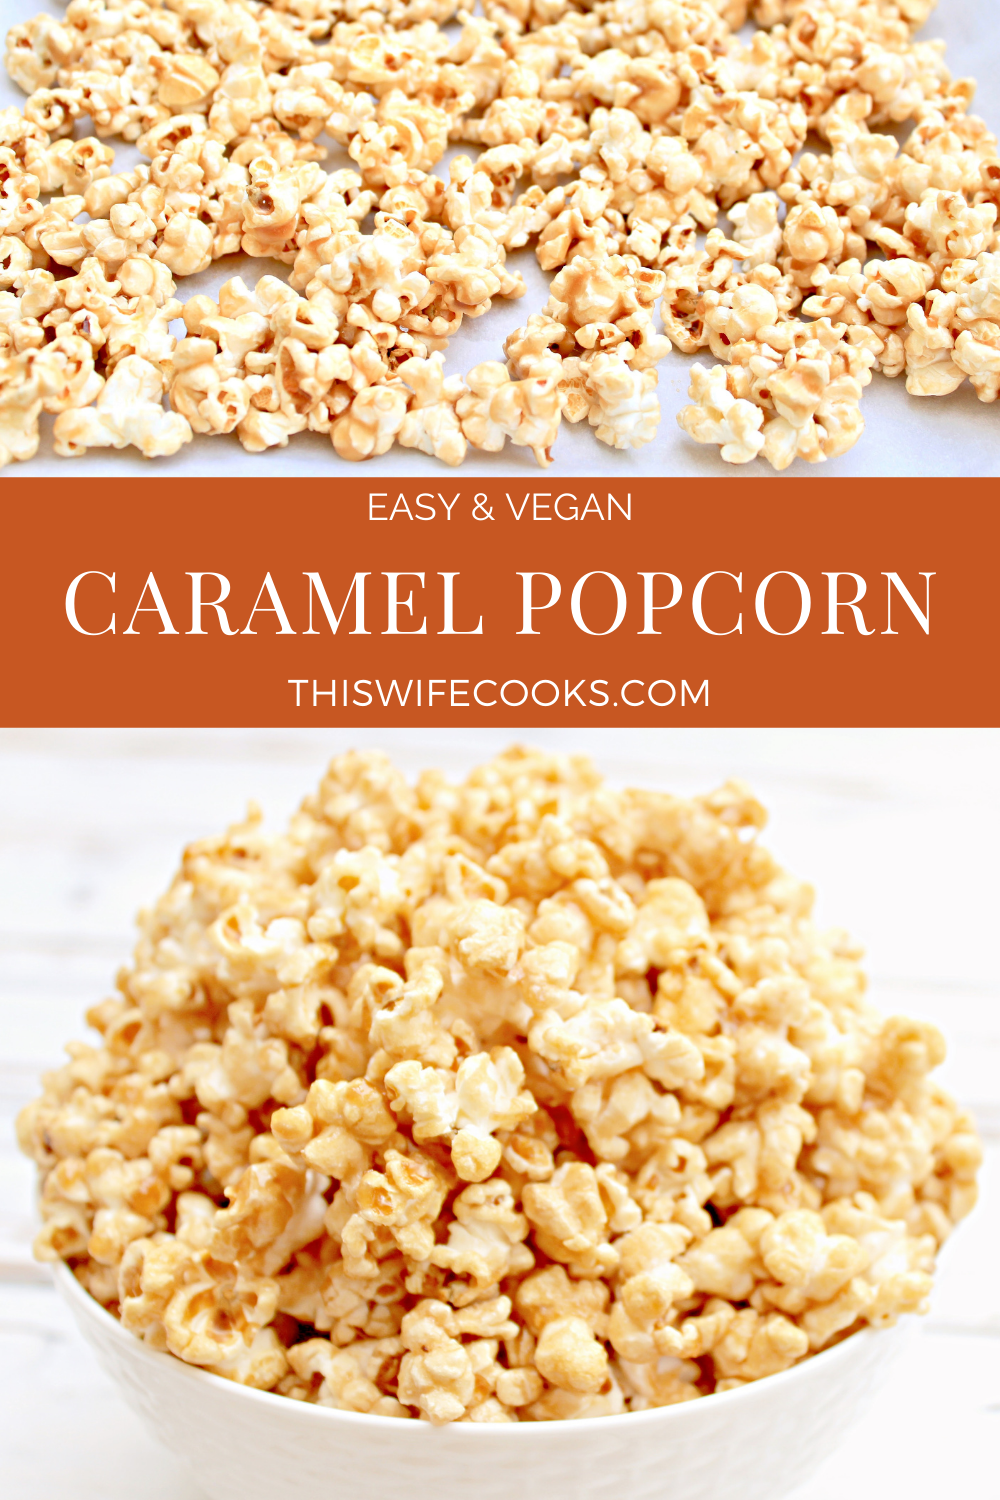 Homemade caramel popcorn is a deliciously addictive snack, easy to make with 7 simple ingredients, and great for gifting! via @thiswifecooks